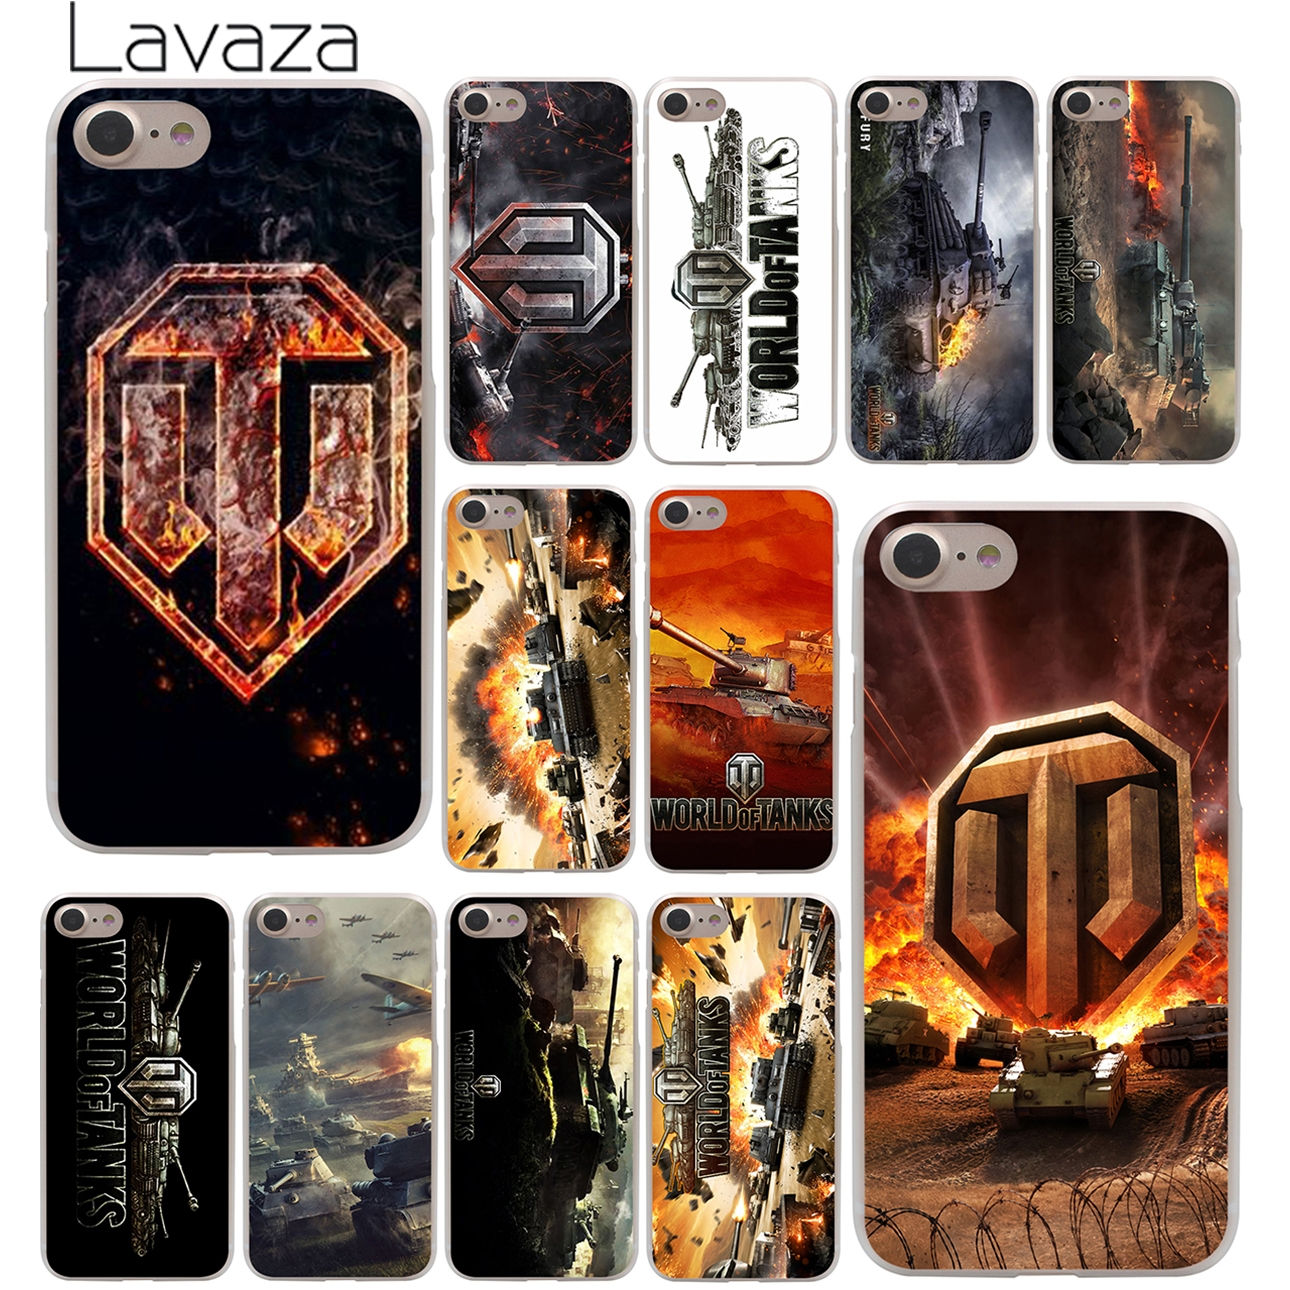 world of tanks Hard Case Transparent for iPhone 7 7 Plus 6 6s Plus 5 5S SE 5C 4 4S